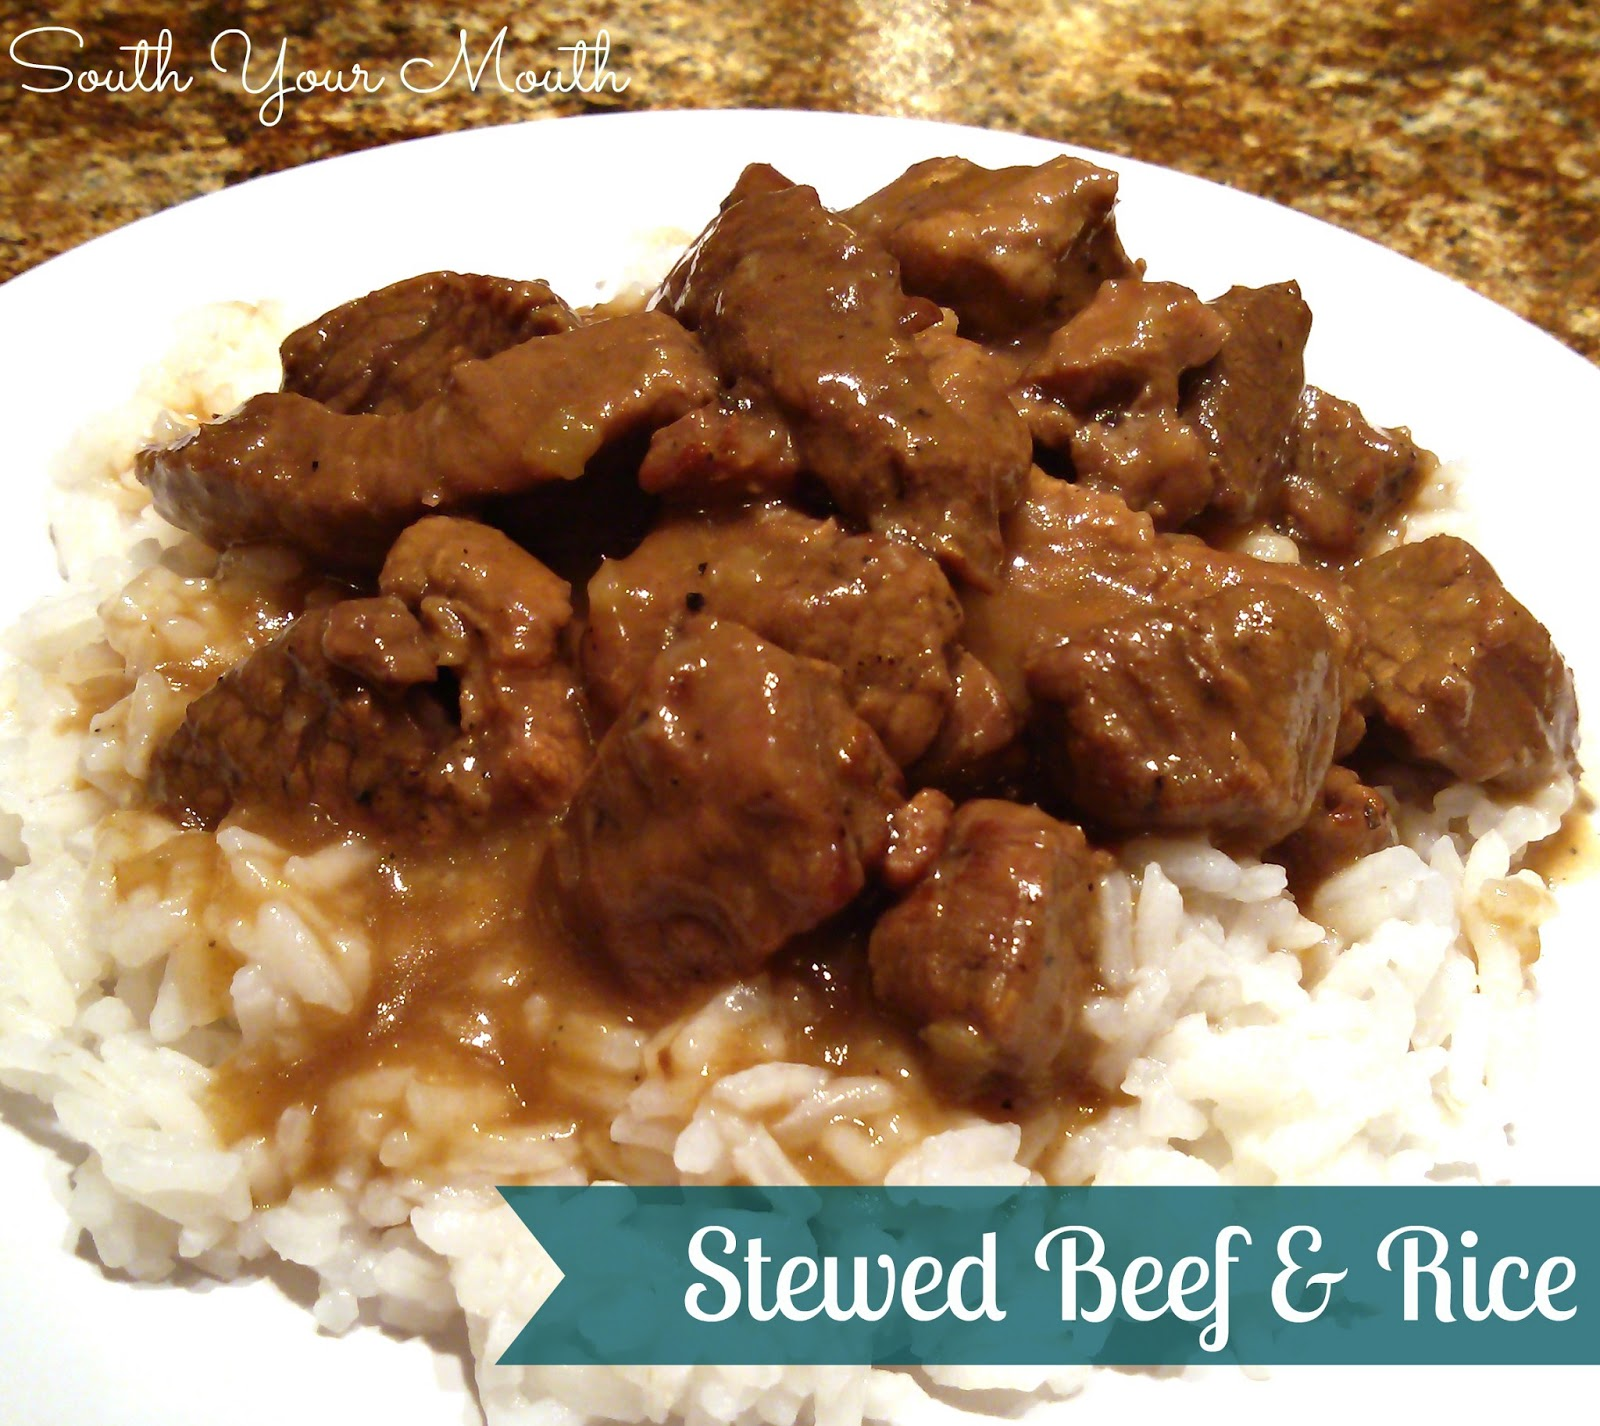 South Your Mouth Stewed Beef Amp Rice